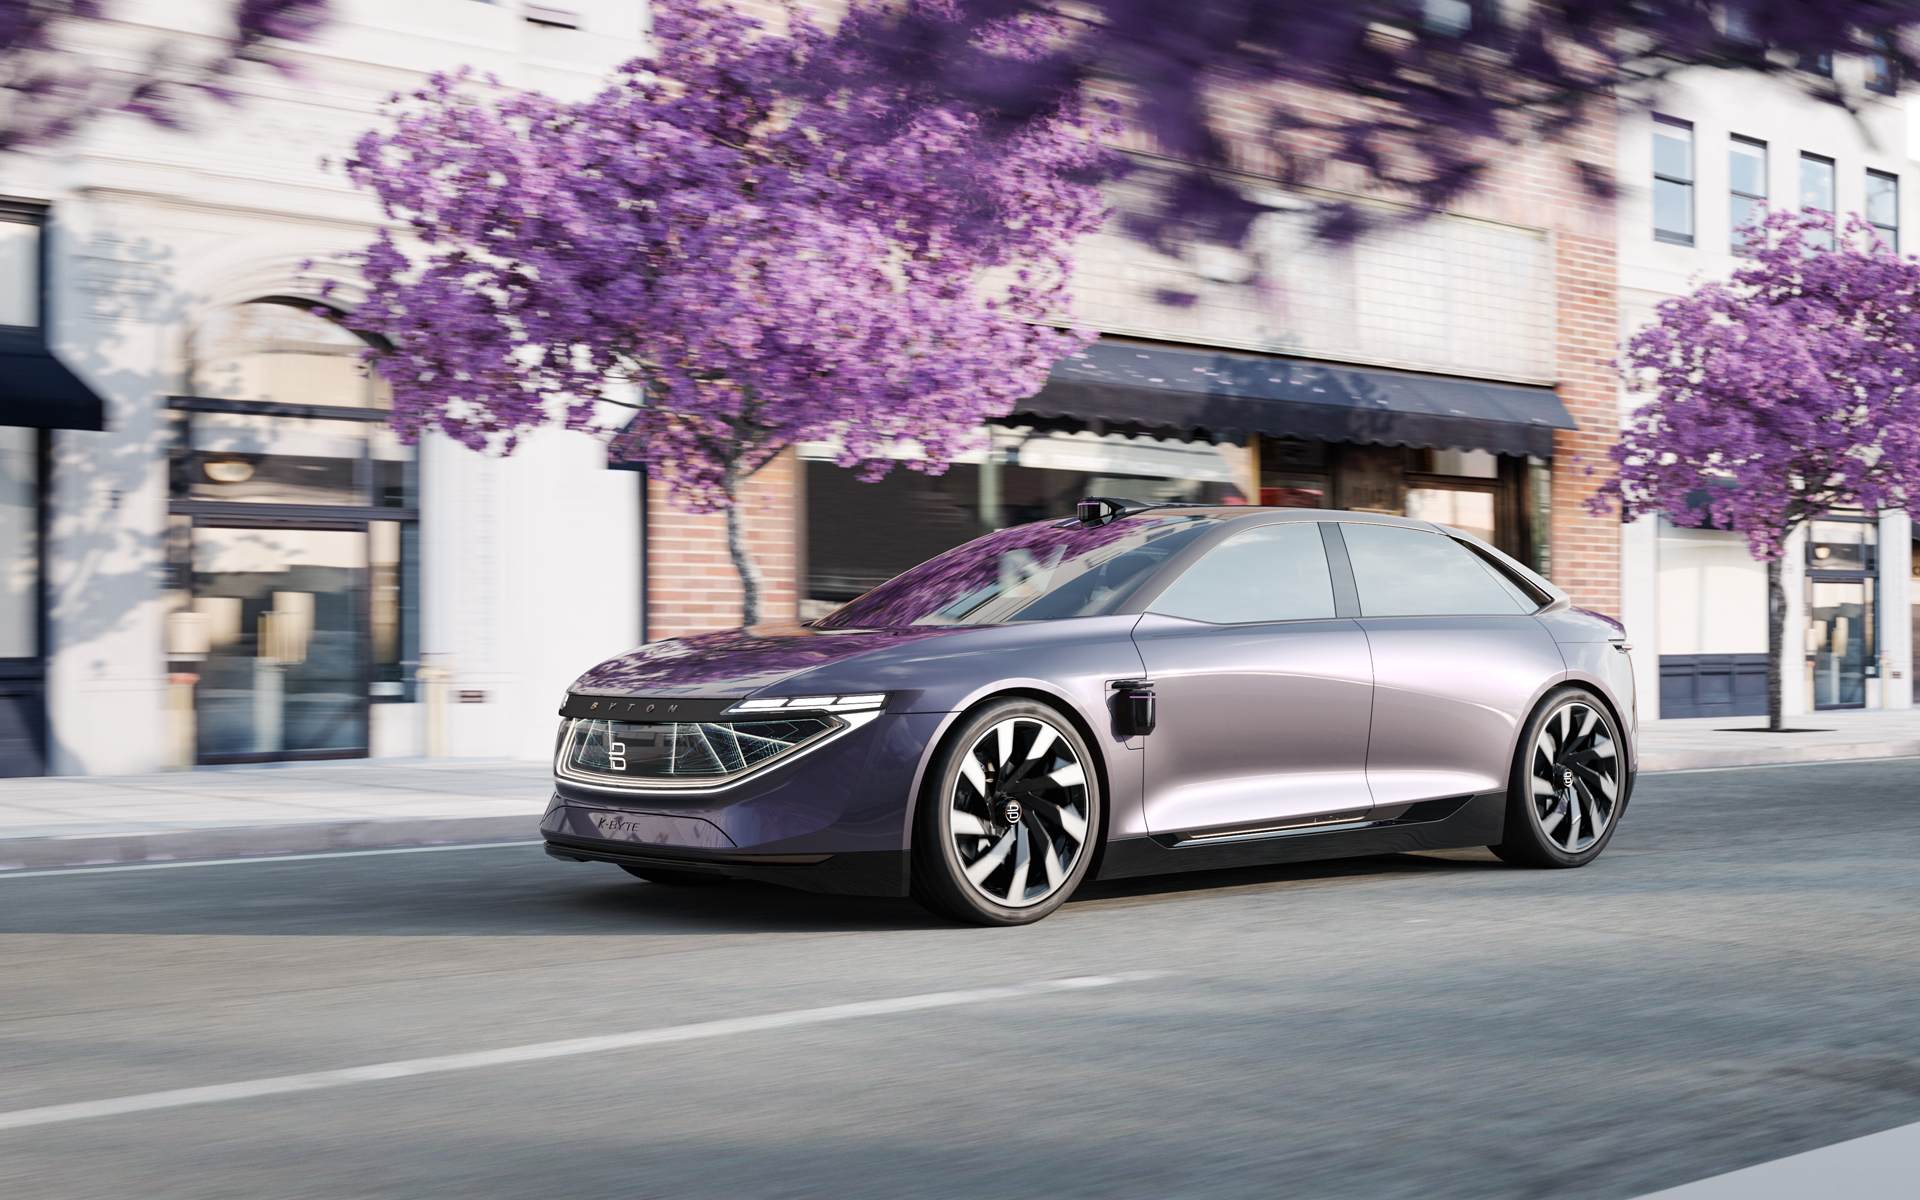 The all-electric K-Byte Concept has a futuristic exterior design that echoes some features of the Lucid Air and the Faraday Future FF91